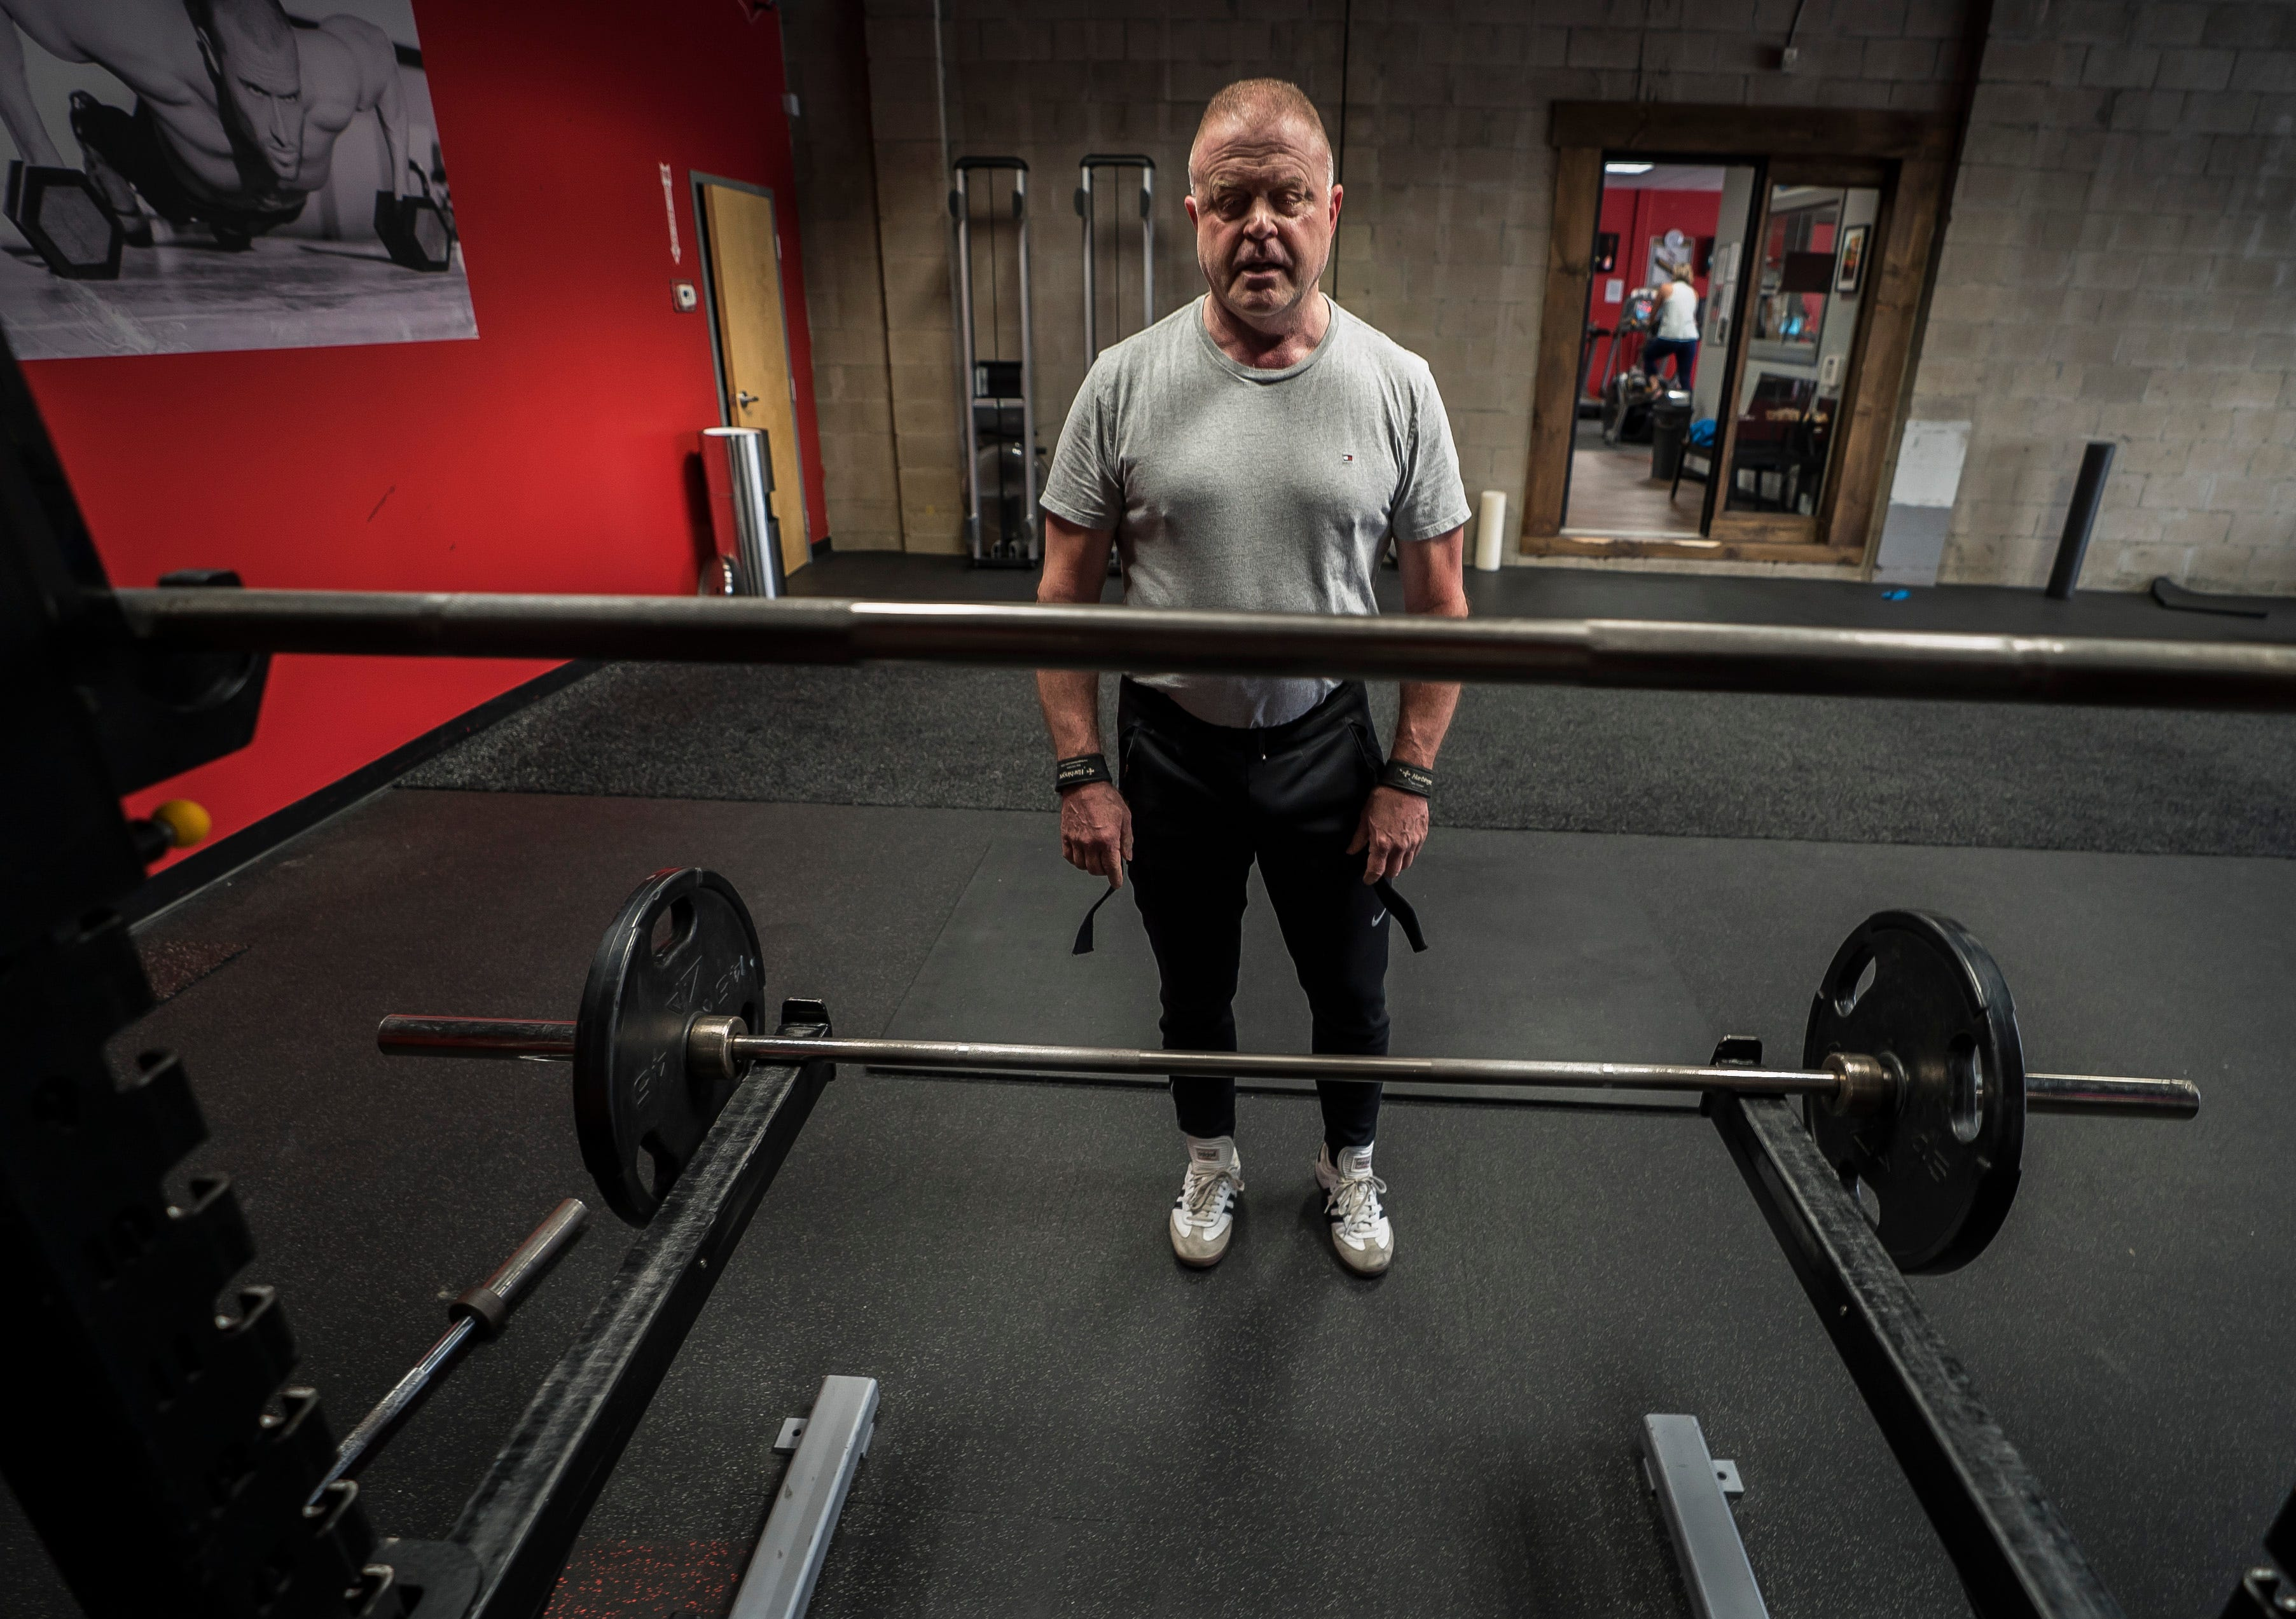 Michael Lowe finishes his daily workout at Snap Fitness in Berlin on Tuesday morning, April 30, 2019. Lowe's struggles with addiction exploded into the public's view in 2009 while serving at the Vergennes Police Chief. After years of struggling with opioid addiction that led to Lowe abusing other drugs as well as alcohol, he says he's finally in a healthy place and now works with people suffering from mental health issues.